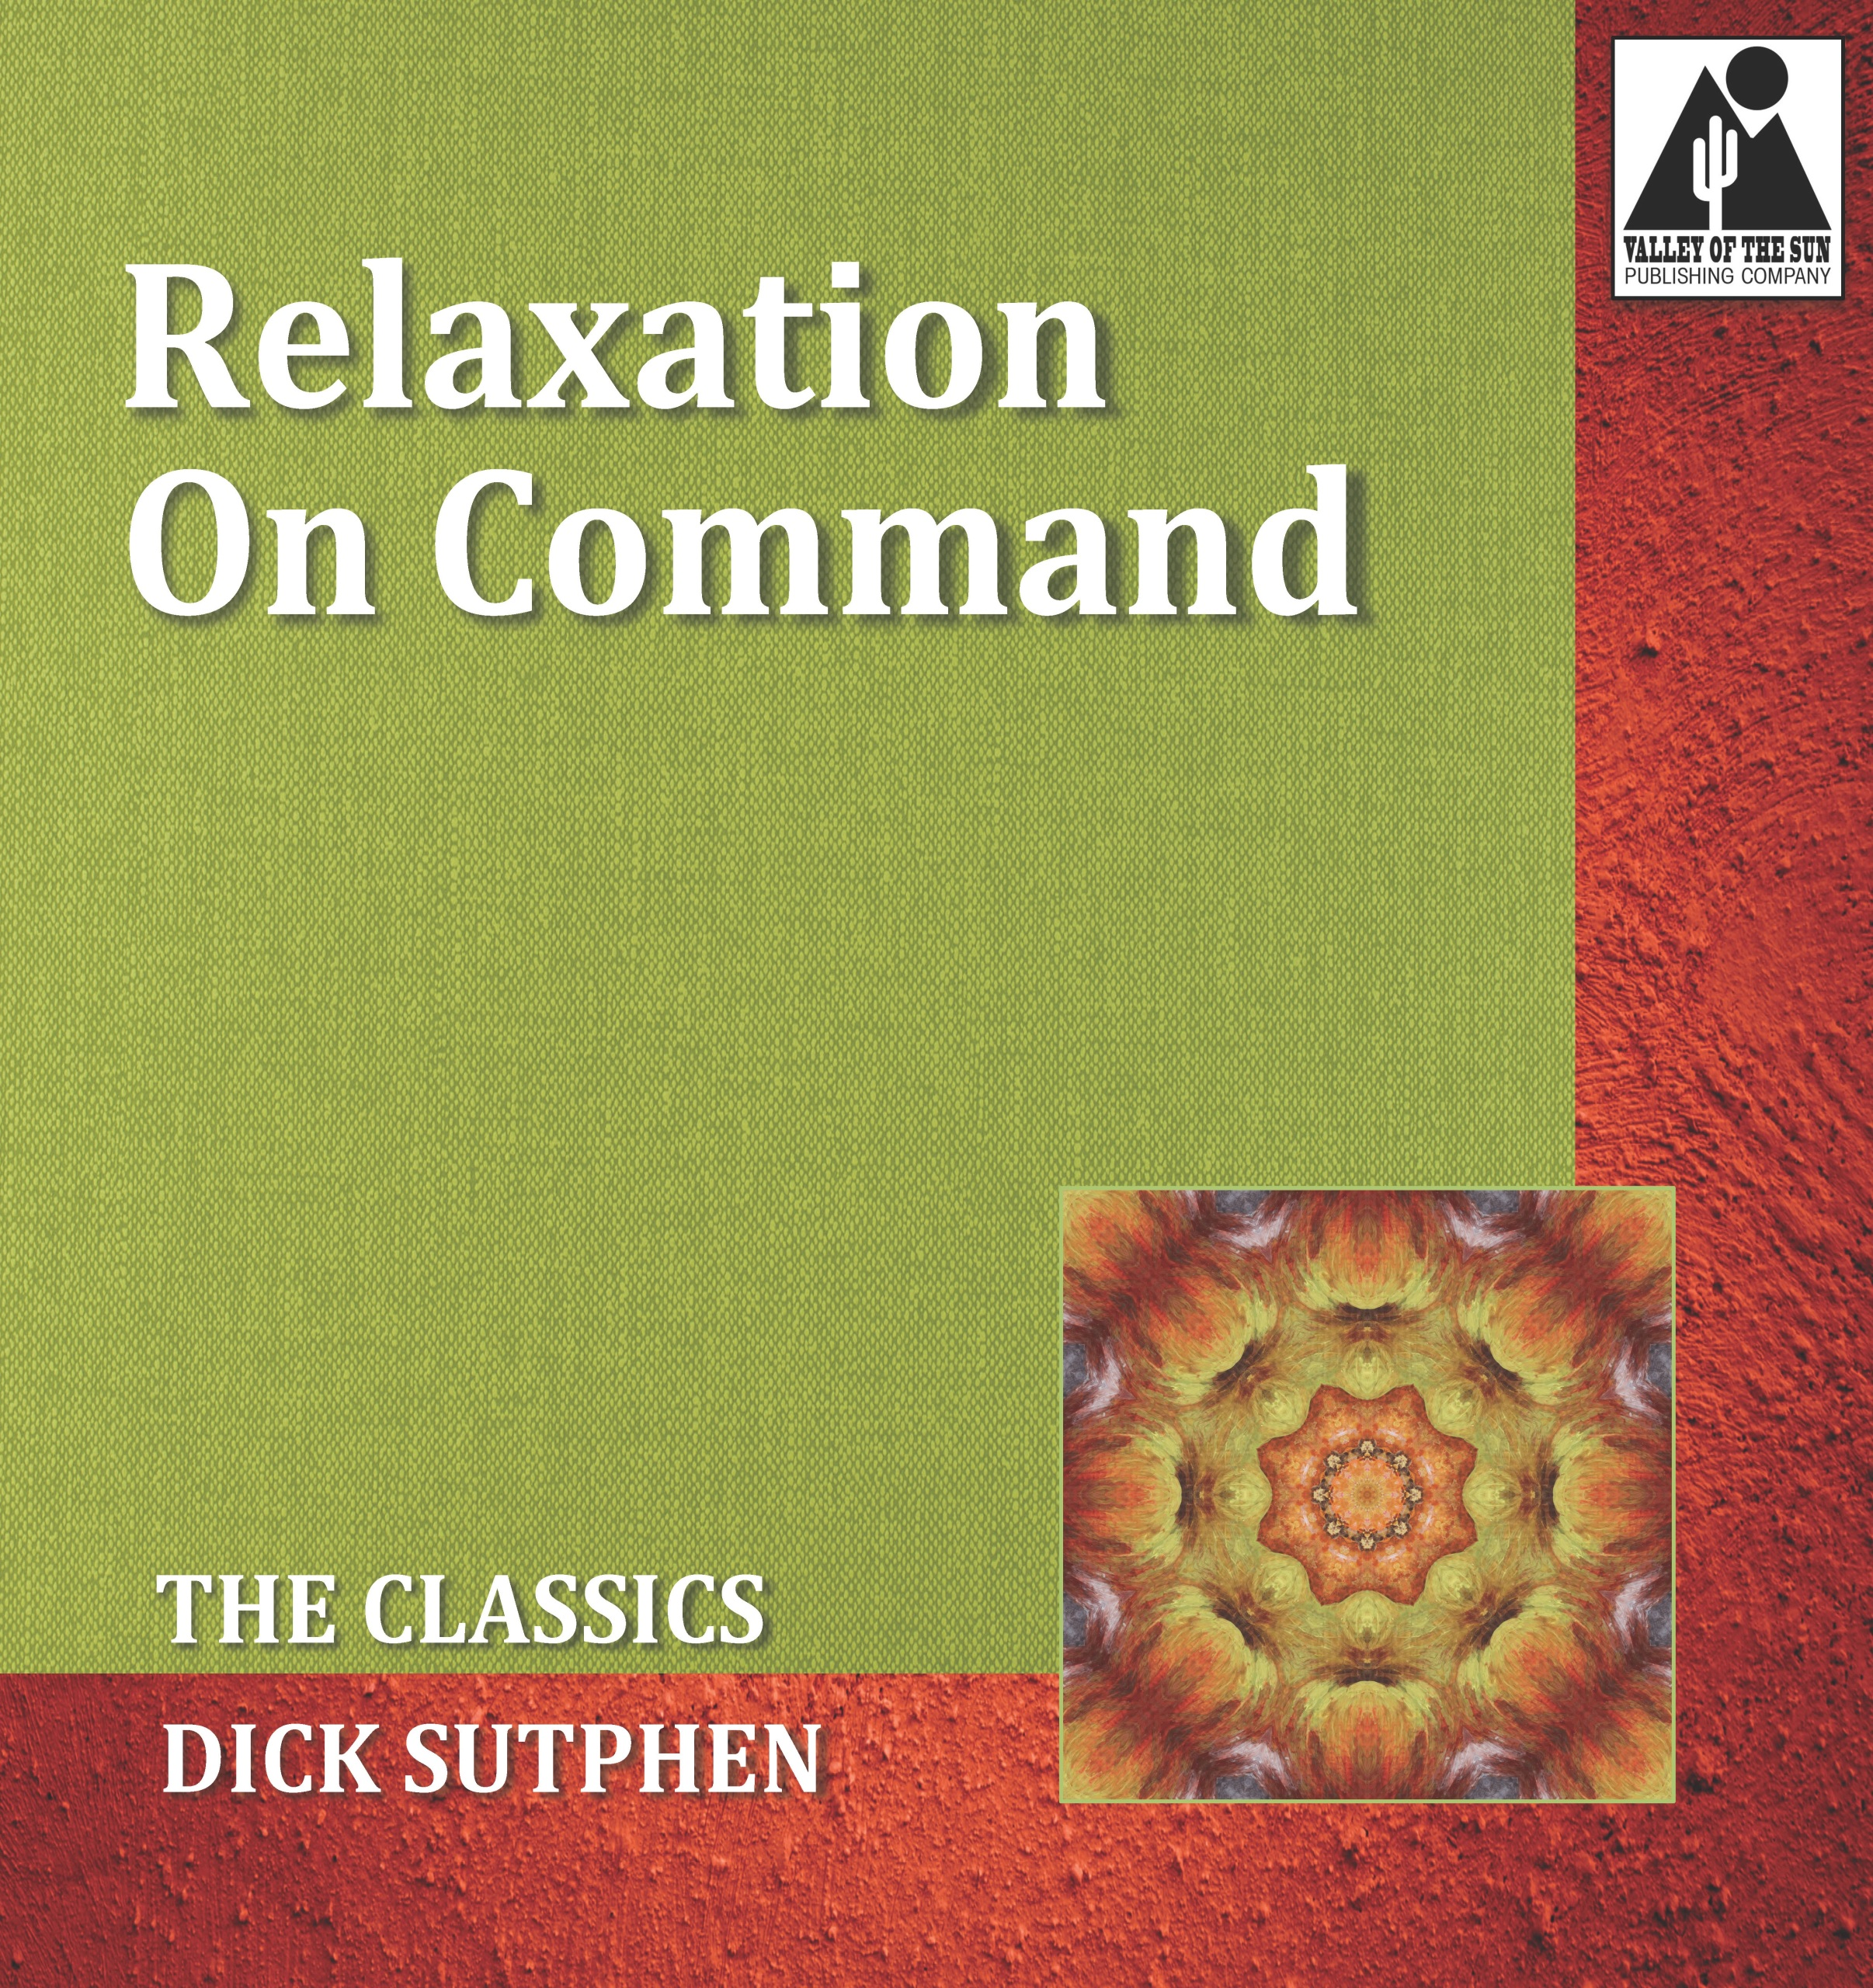 Dick sutphen relaxation